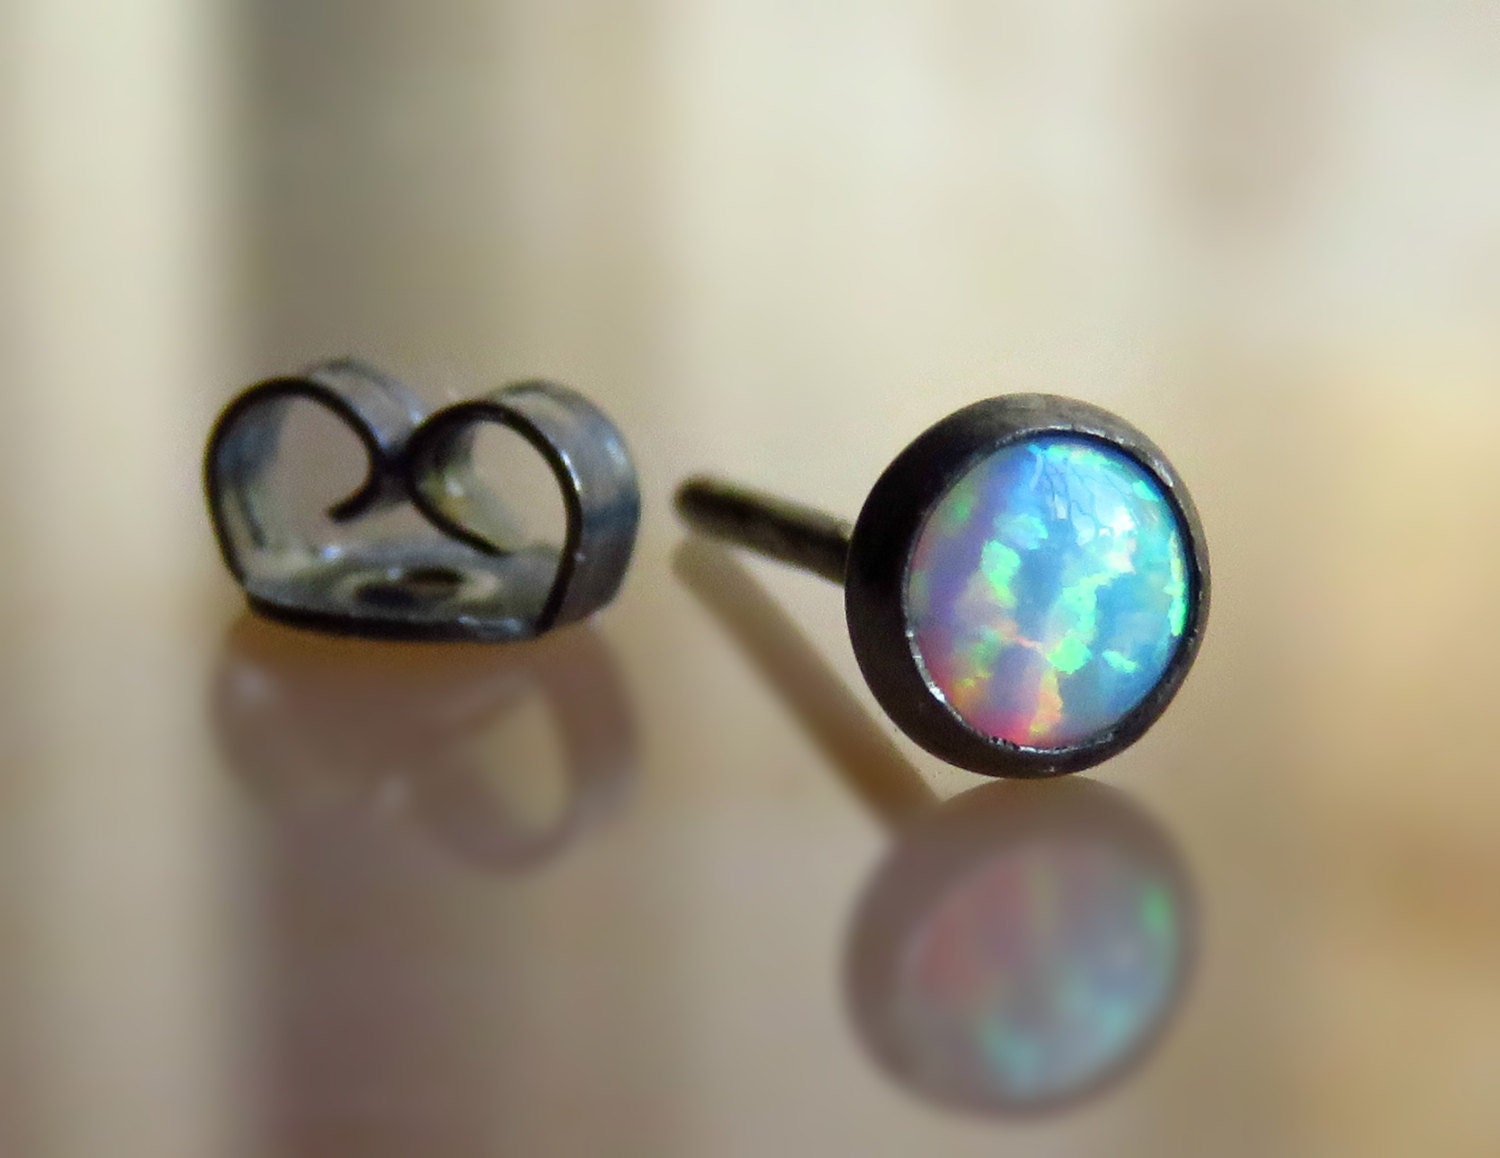 opal cartilage earrings white opal tragus stud earring cartilage jewelry helix 7412